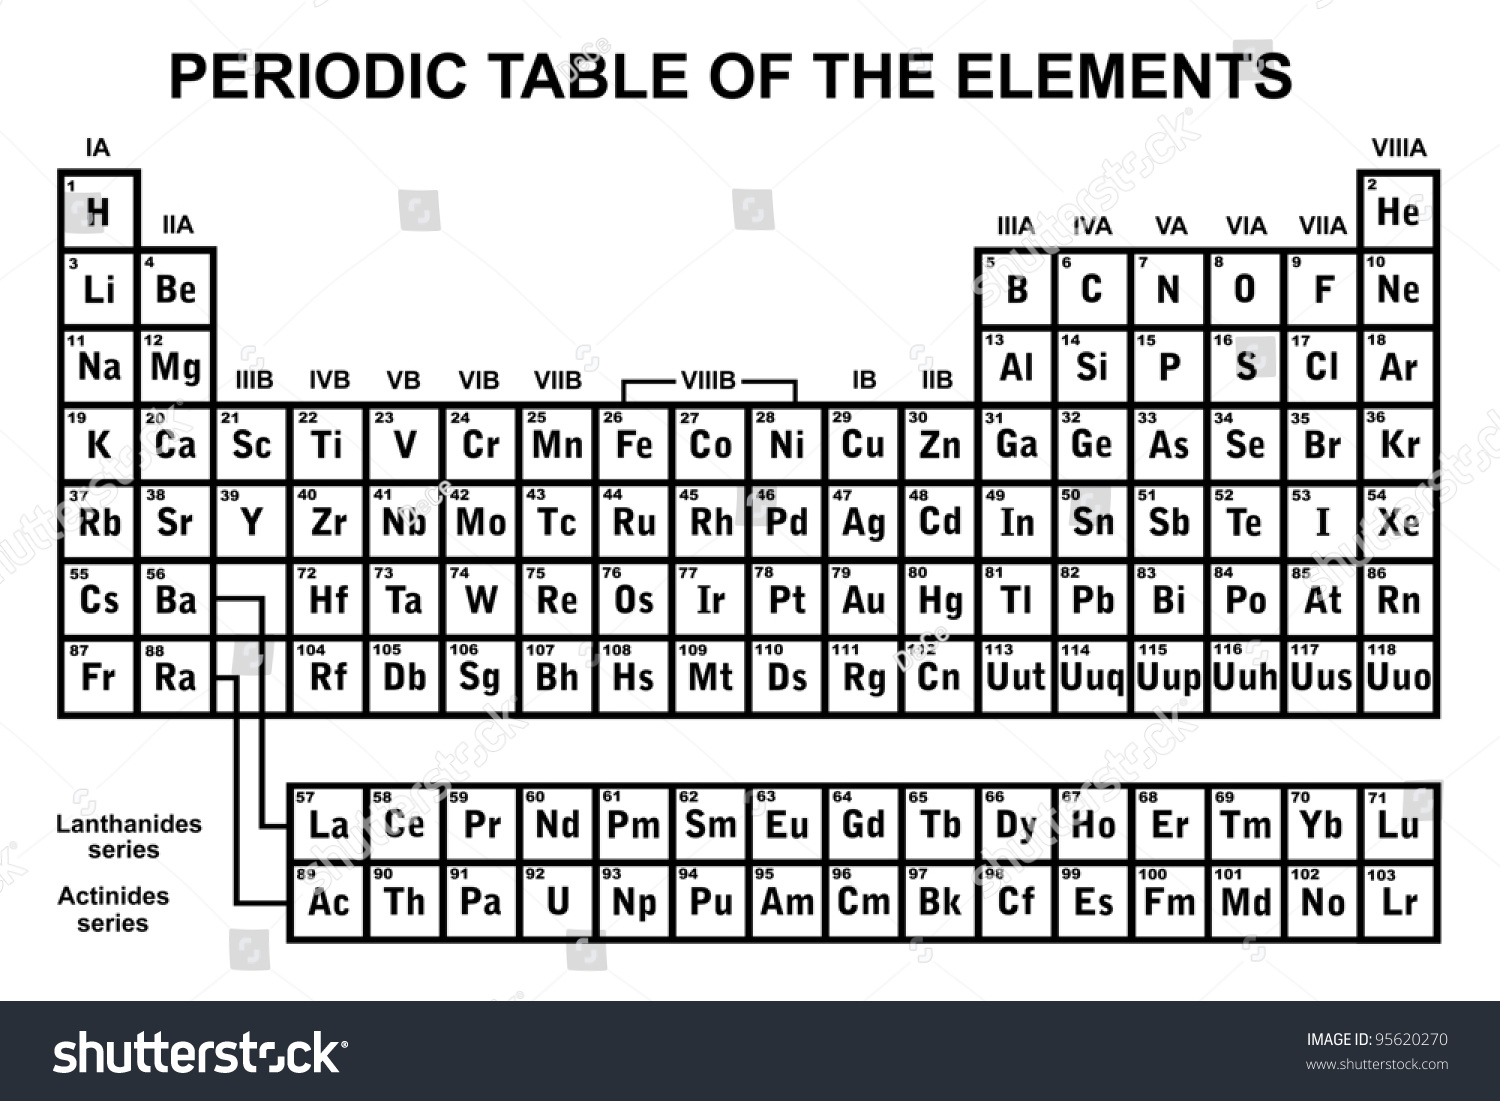 Periodic table 114 choice image periodic table images element 111 periodic table choice image periodic table images royalty free periodic table of the elements gamestrikefo Images